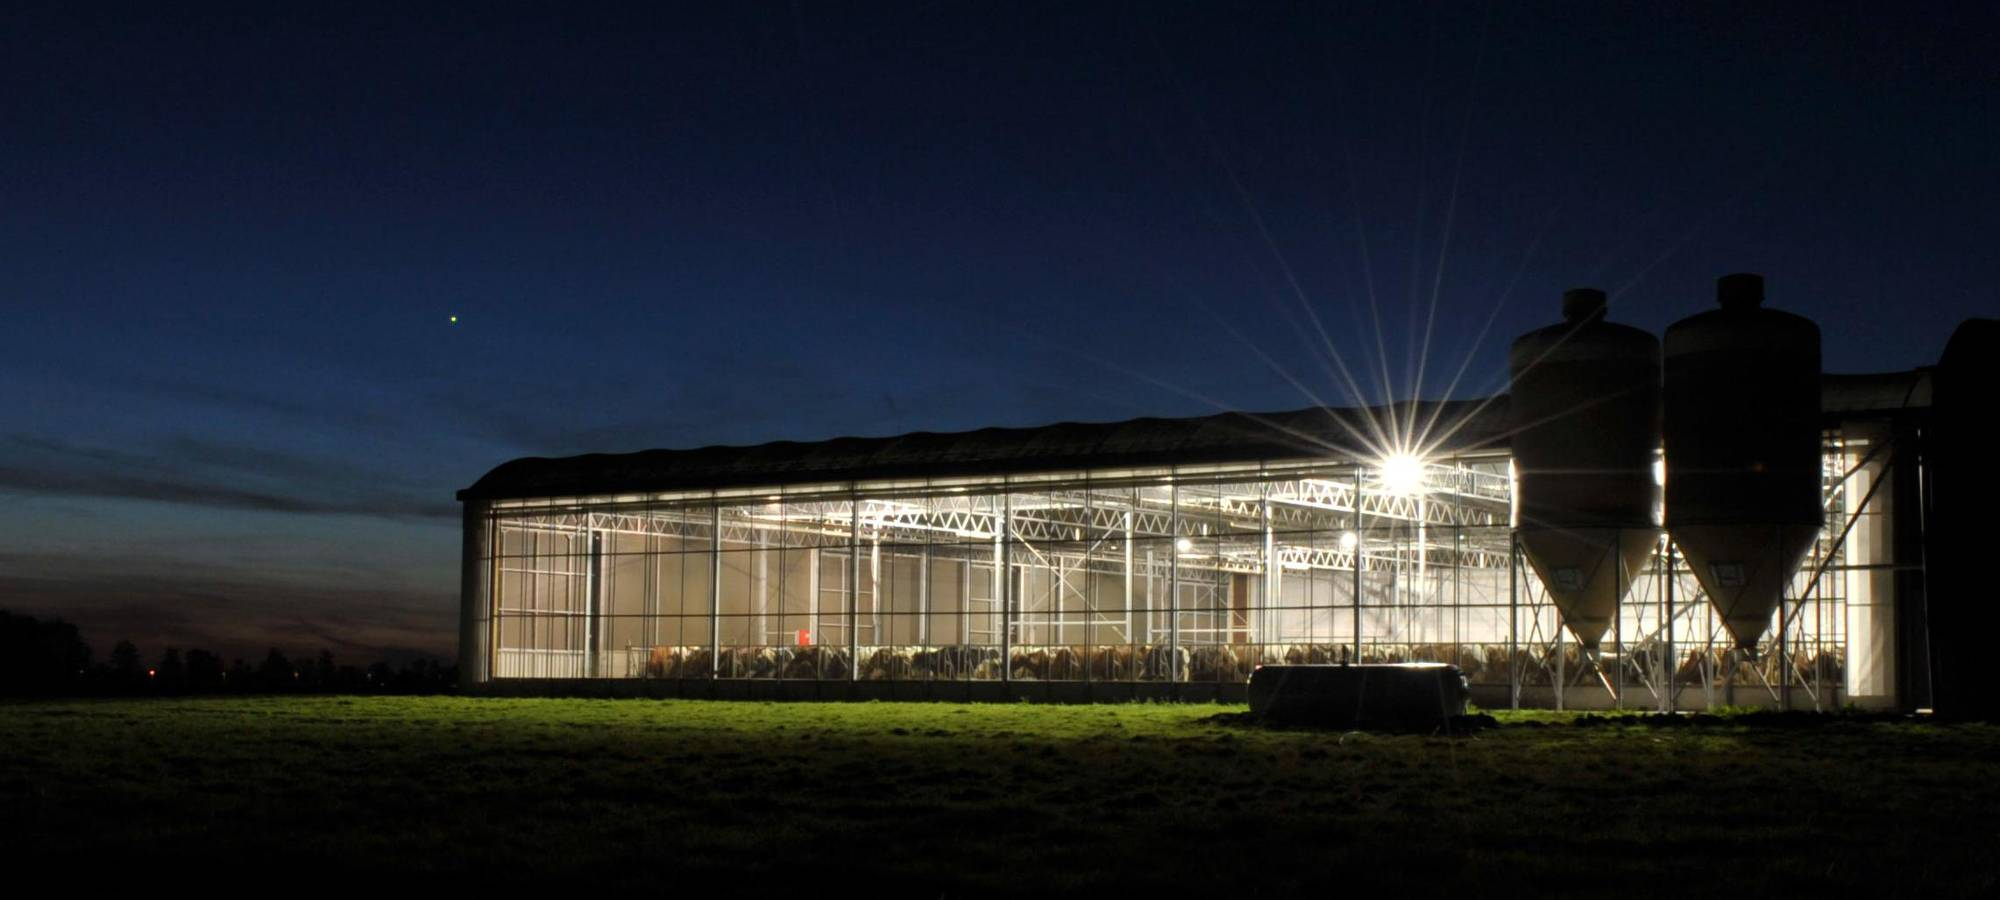 1e8045db5c Lely expands their barn lighting system with LED lights - Lely